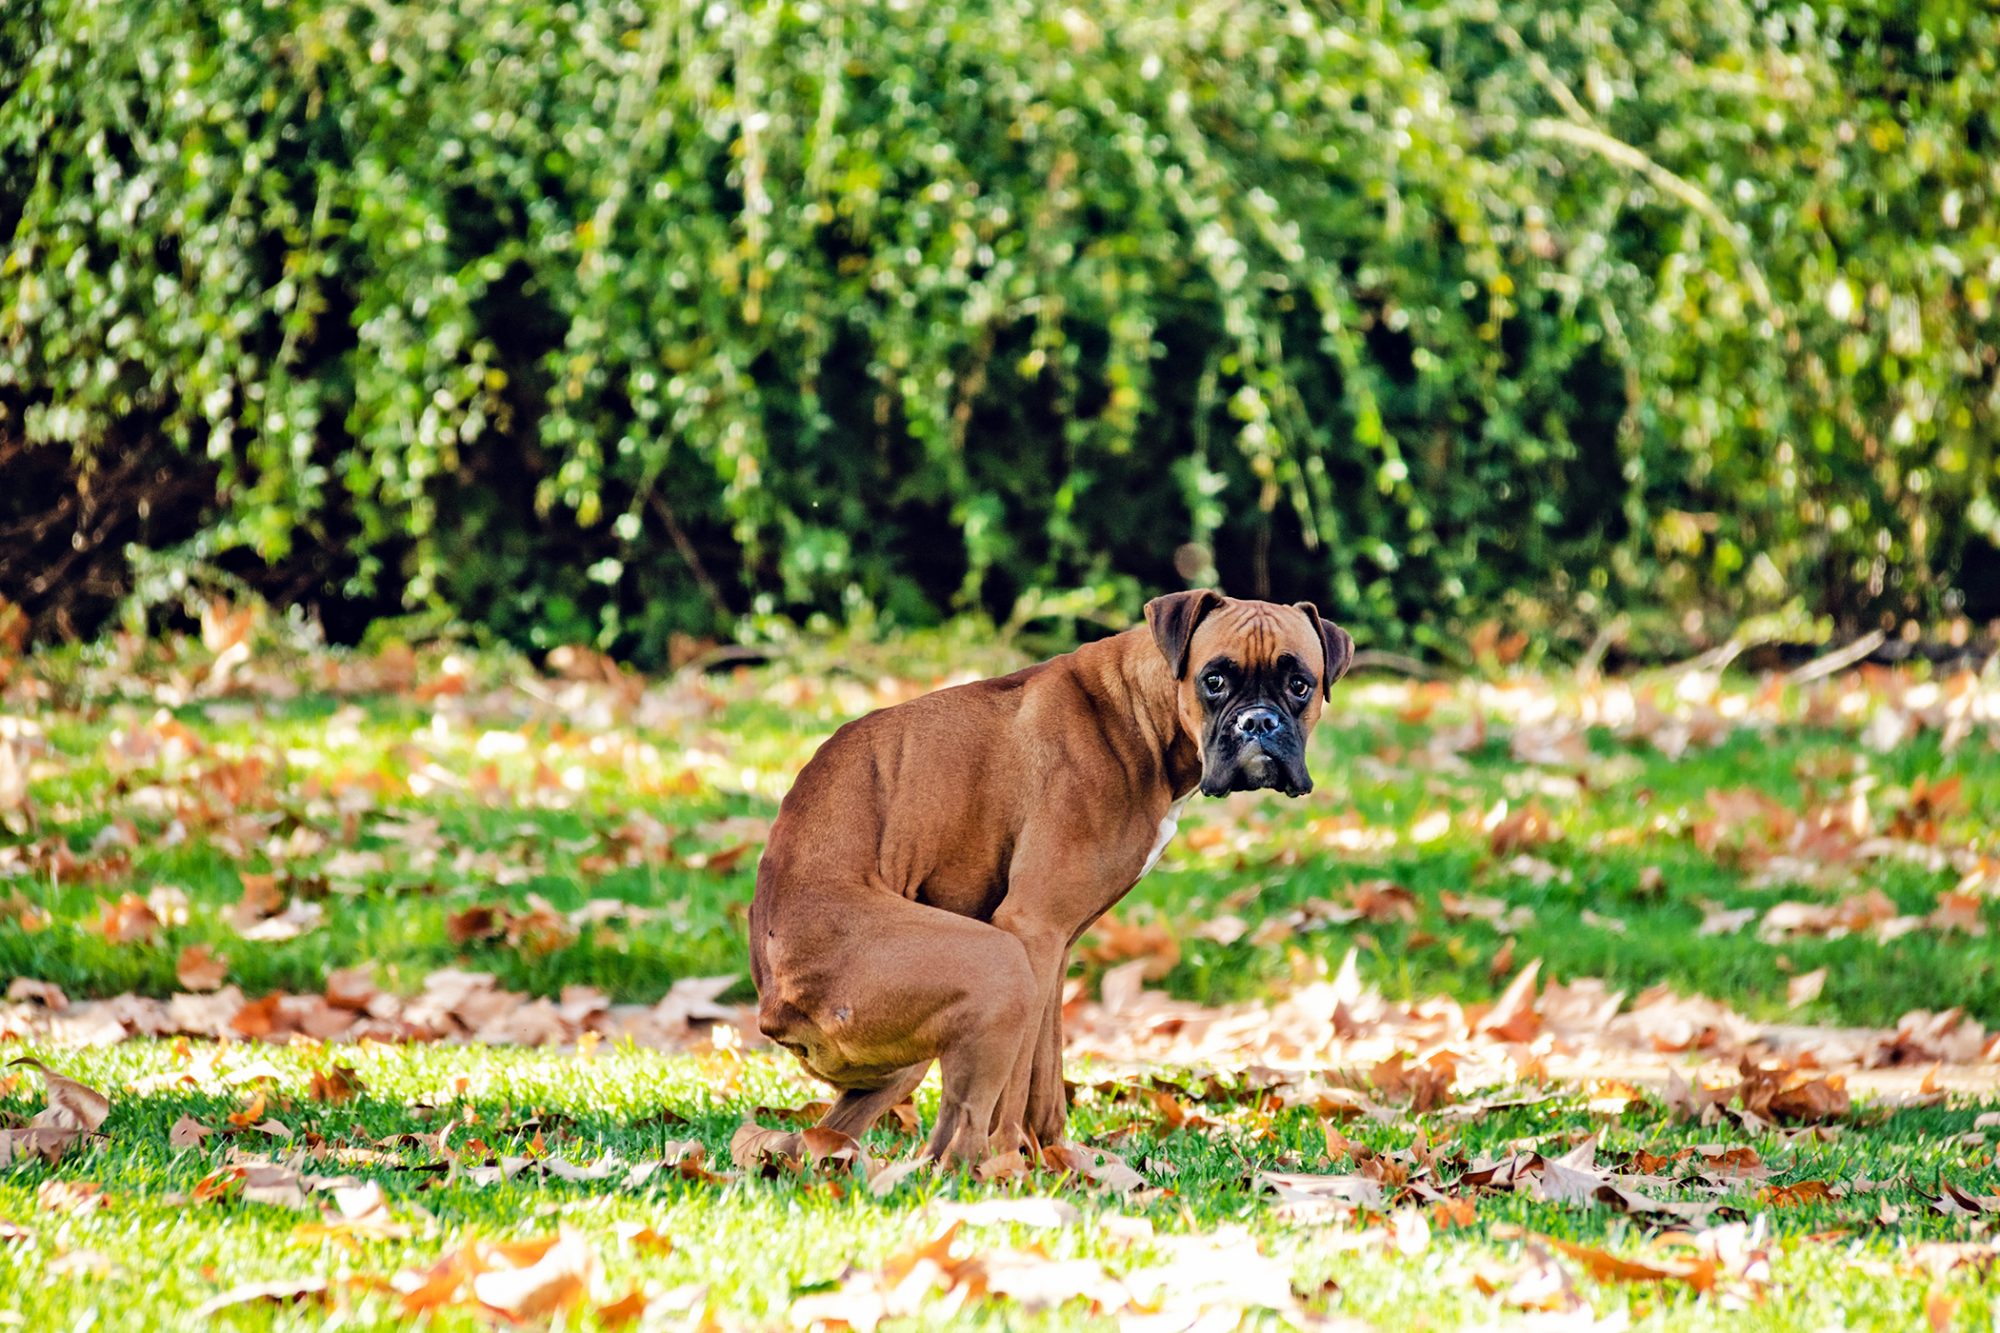 adult dog pooping in the grass